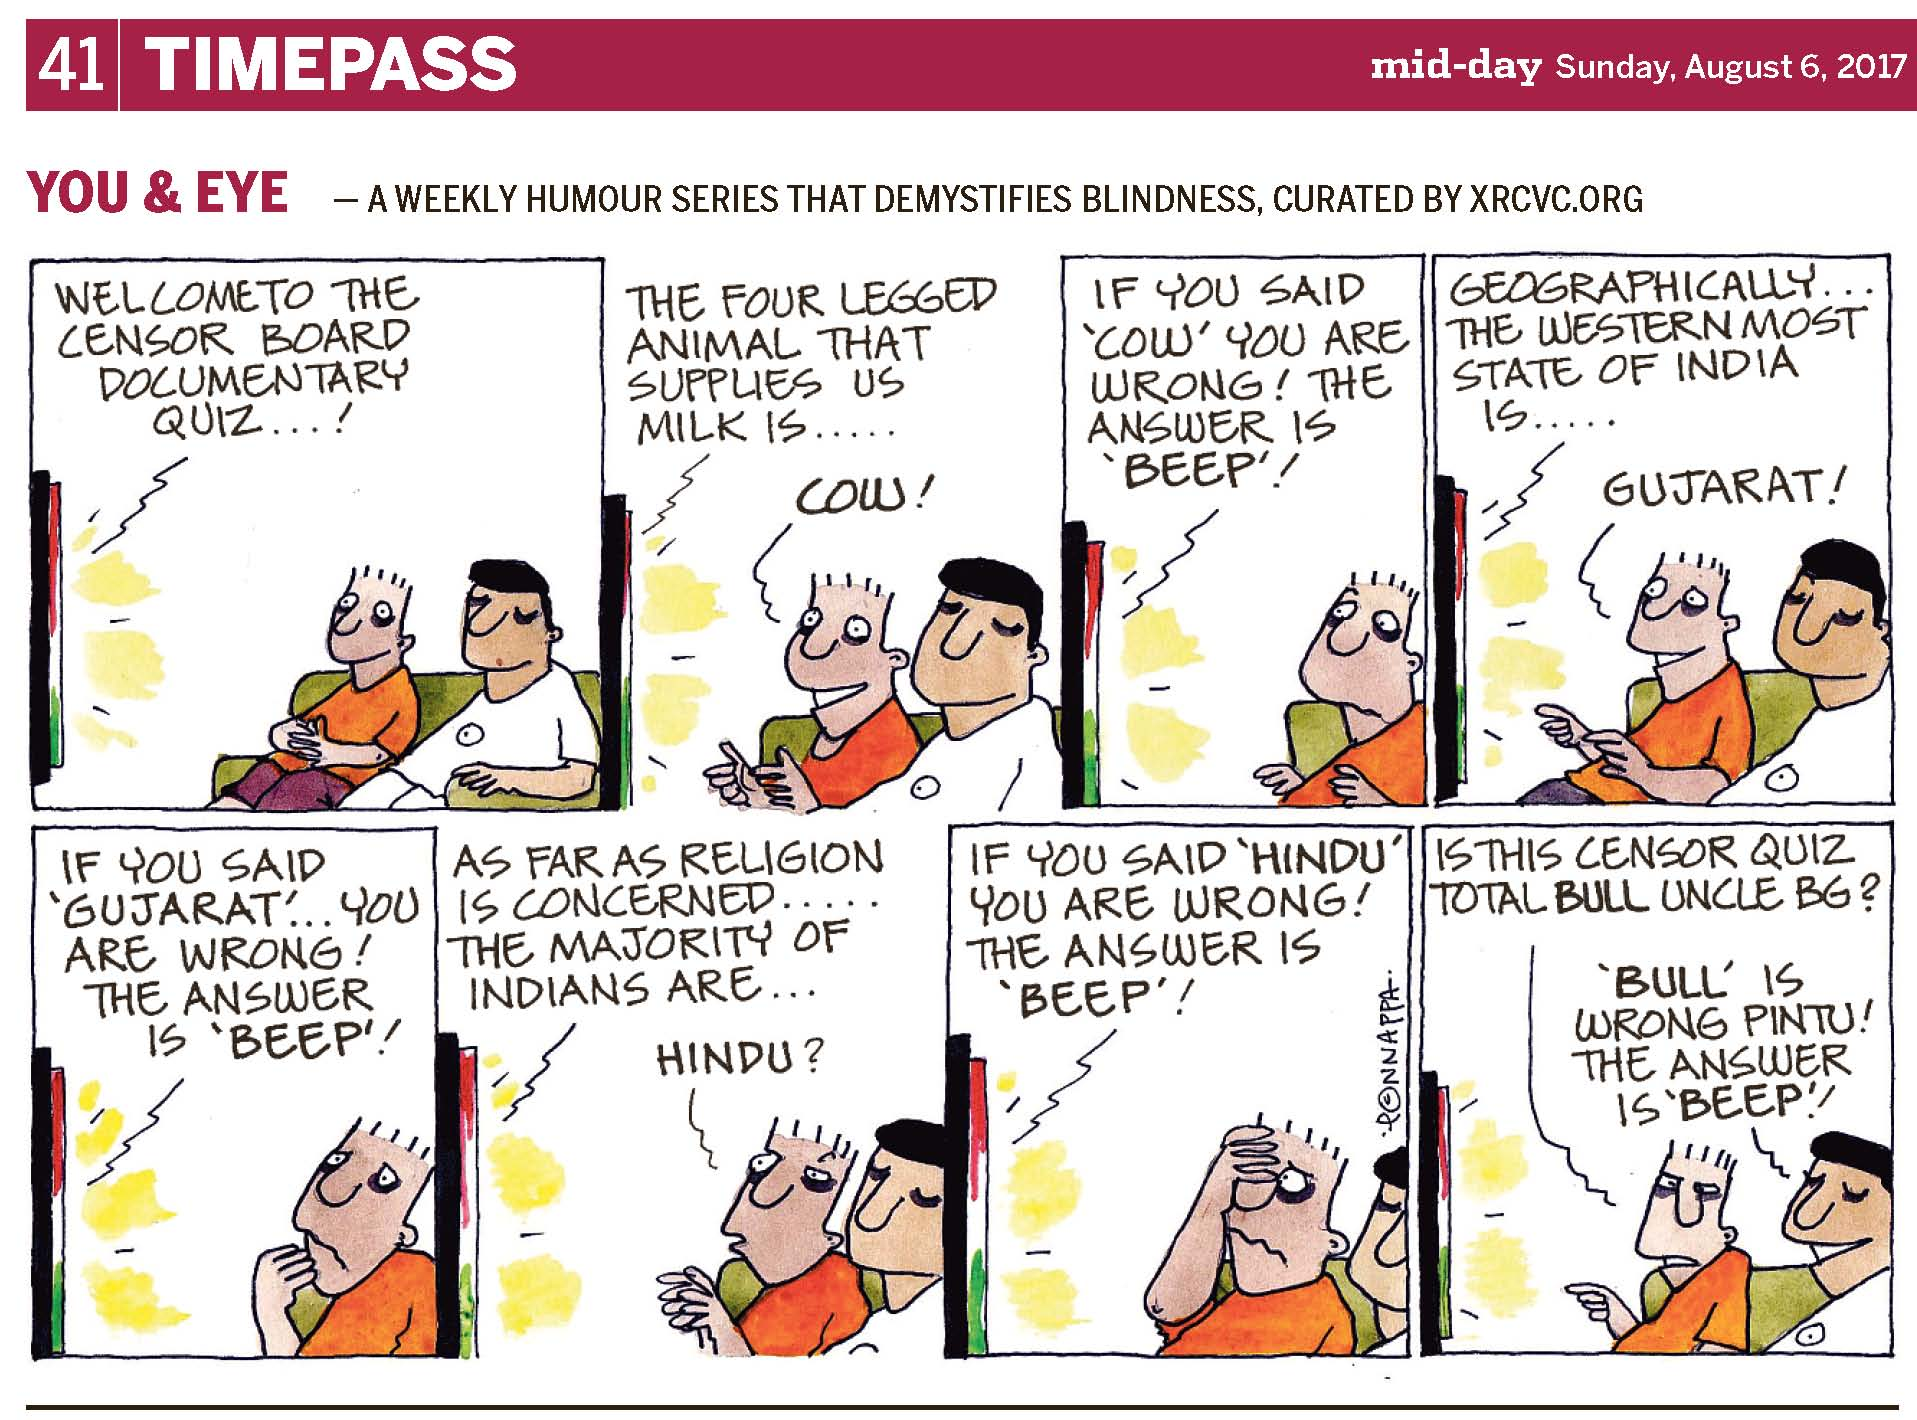 (top-left) 41 | TIMEPASS (top-right) mid-day Sunday, August 6, 2017 YOU & EYE – A WEEKLY HUMOUR SERIES THAT DEMYSTIFIES BLINDNESS, CURATED BY XRCVC.ORG Image description: A cartoon strip with 8 frames… In each of the frames, short black lines near the T.V. represent sound, while patches of yellow lines, between the black ones, represent visuals coming from the T.V. Frame 1: (A side-view of a T.V. and a green sofa facing it. Pintu and BG are seen smiling while seated on the sofa which appears slanting towards the right of the frame. A line pointing to the T.V., represents that the following text is emanating from the T.V.) Welcome to the Censor Board Documentary Quiz…! Frame 2: (A close-up of Pintu and BG, sitting on the sofa, as Pintu's face is lit up with a wide smile and big eyes as he stares at the T.V. gleefully. He appears to be giving two thumbs up to the T.V.. BG continues to smile. A line pointing to the T.V., represents that the following text is coming from the T.V.) The four legged animal that supplies us milk is… Pintu: COW! Frame 3: (A close-up of Pintu with a frown as he looks at the T.V. disappointedly. His hands seem to be taken aback to match the rest of his body language. A line pointing to the T.V., represents that the following text is originating from the T.V.) If you said 'COW' you are wrong! The answer is 'BEEP'! Frame 4: (A close-up of Pintu and BG, sitting on the sofa, with Pintu sporting a wide smile again as his eyes are open wide in anticipation once more while he stares at the T.V. excitedly. Again, he appears to be giving two thumbs up. BG continues to smile. A line pointing to the T.V., represents that the following text stems from the T.V.) Geographically… the Western most state of India is… Pintu: GUJARAT! Frame 5: